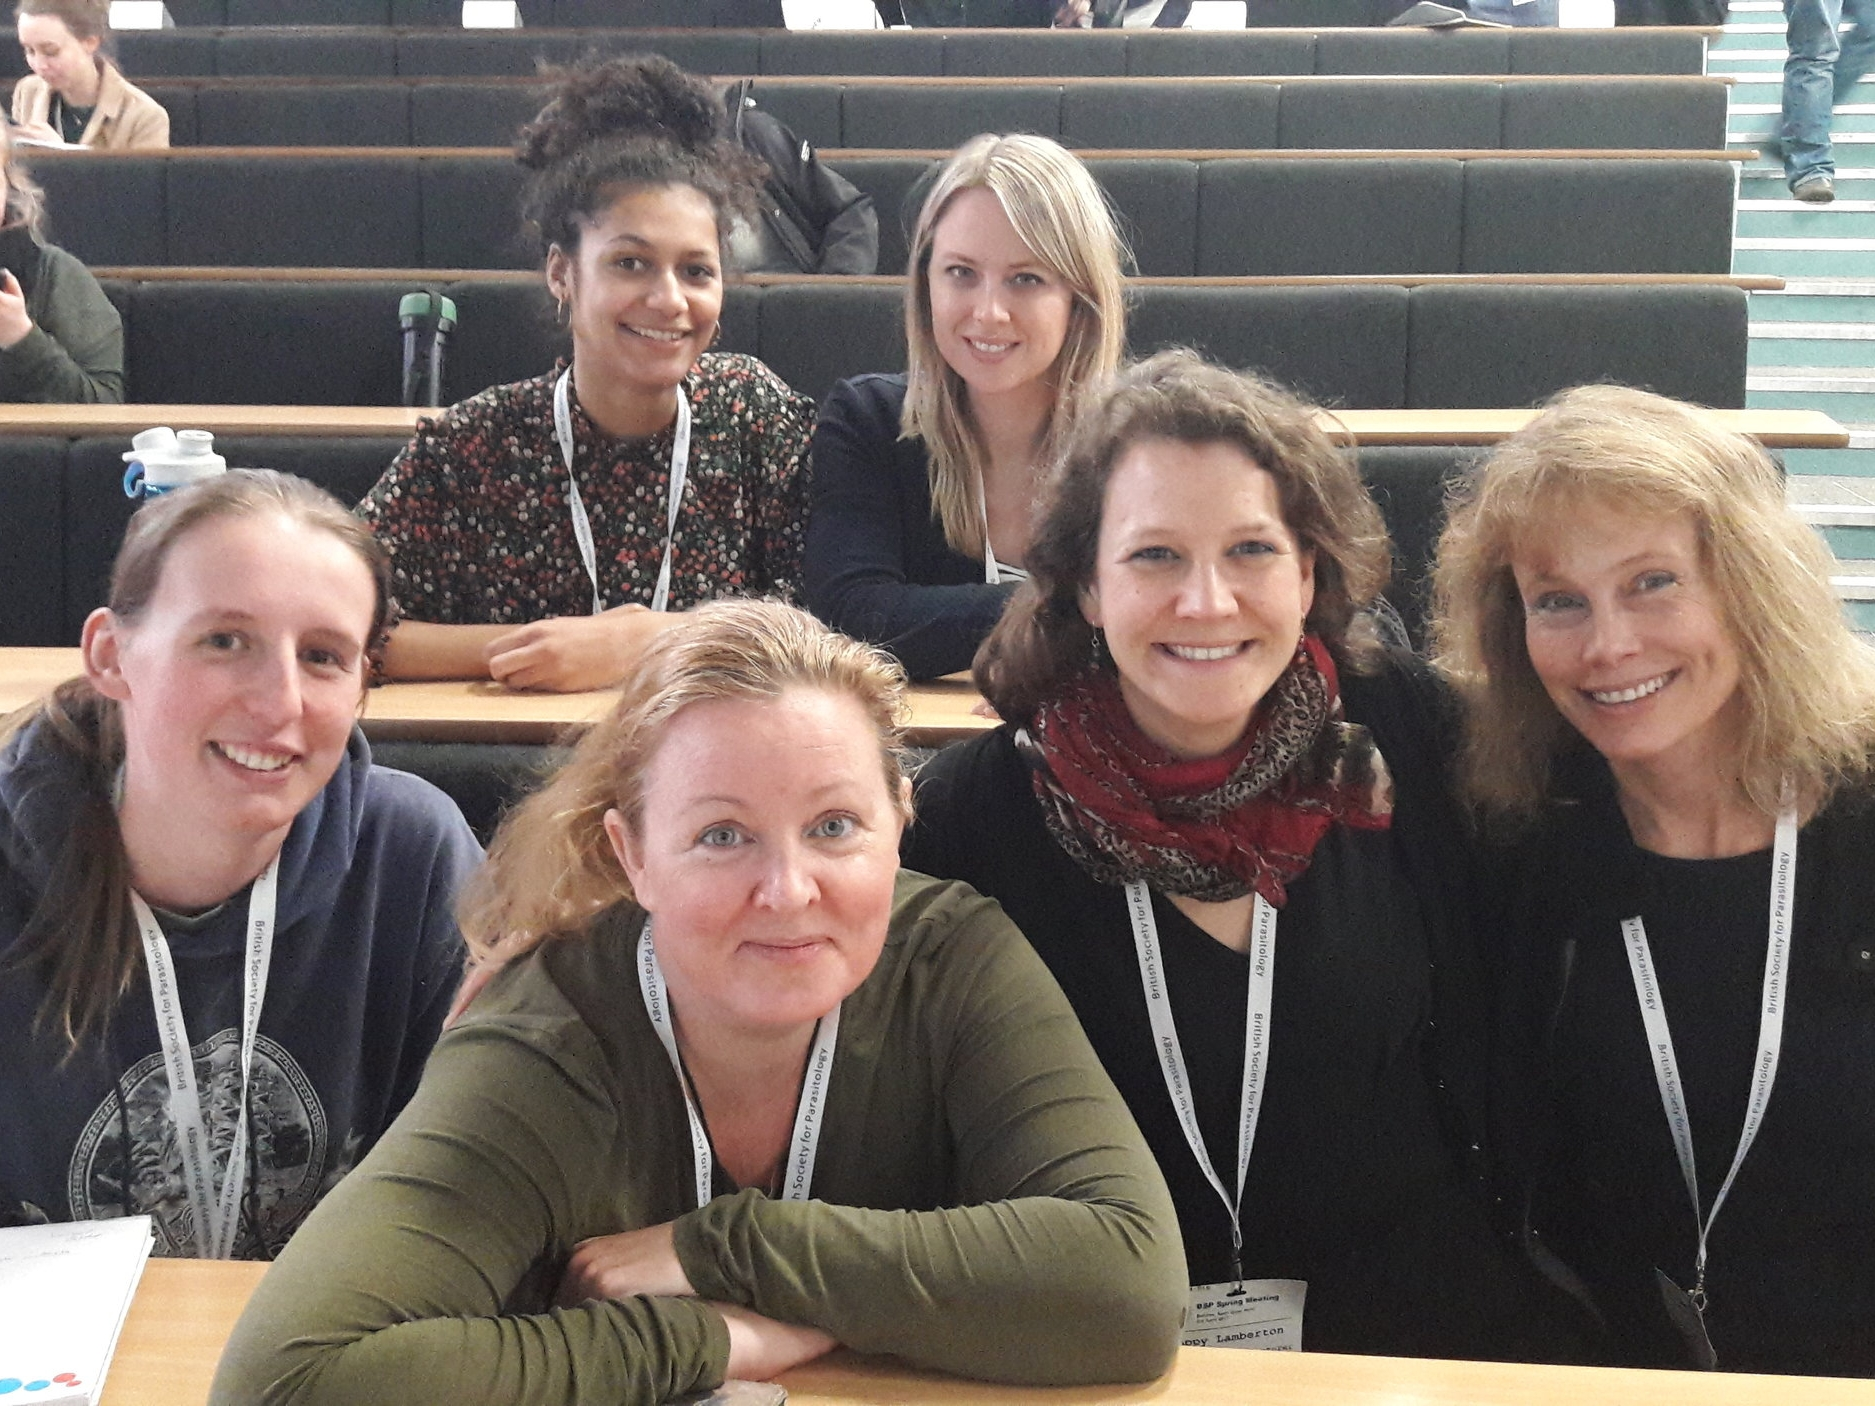 BSP meeting - In April 2018 the Lamberton Lab (and former PhD supervisor Prof Joanne Webster) headed off to Aberystwyth for the annual British Society for Parasitology meeting. Our three oral presentations and two poster presentations were a great success, along with many other highlights of the meeting.